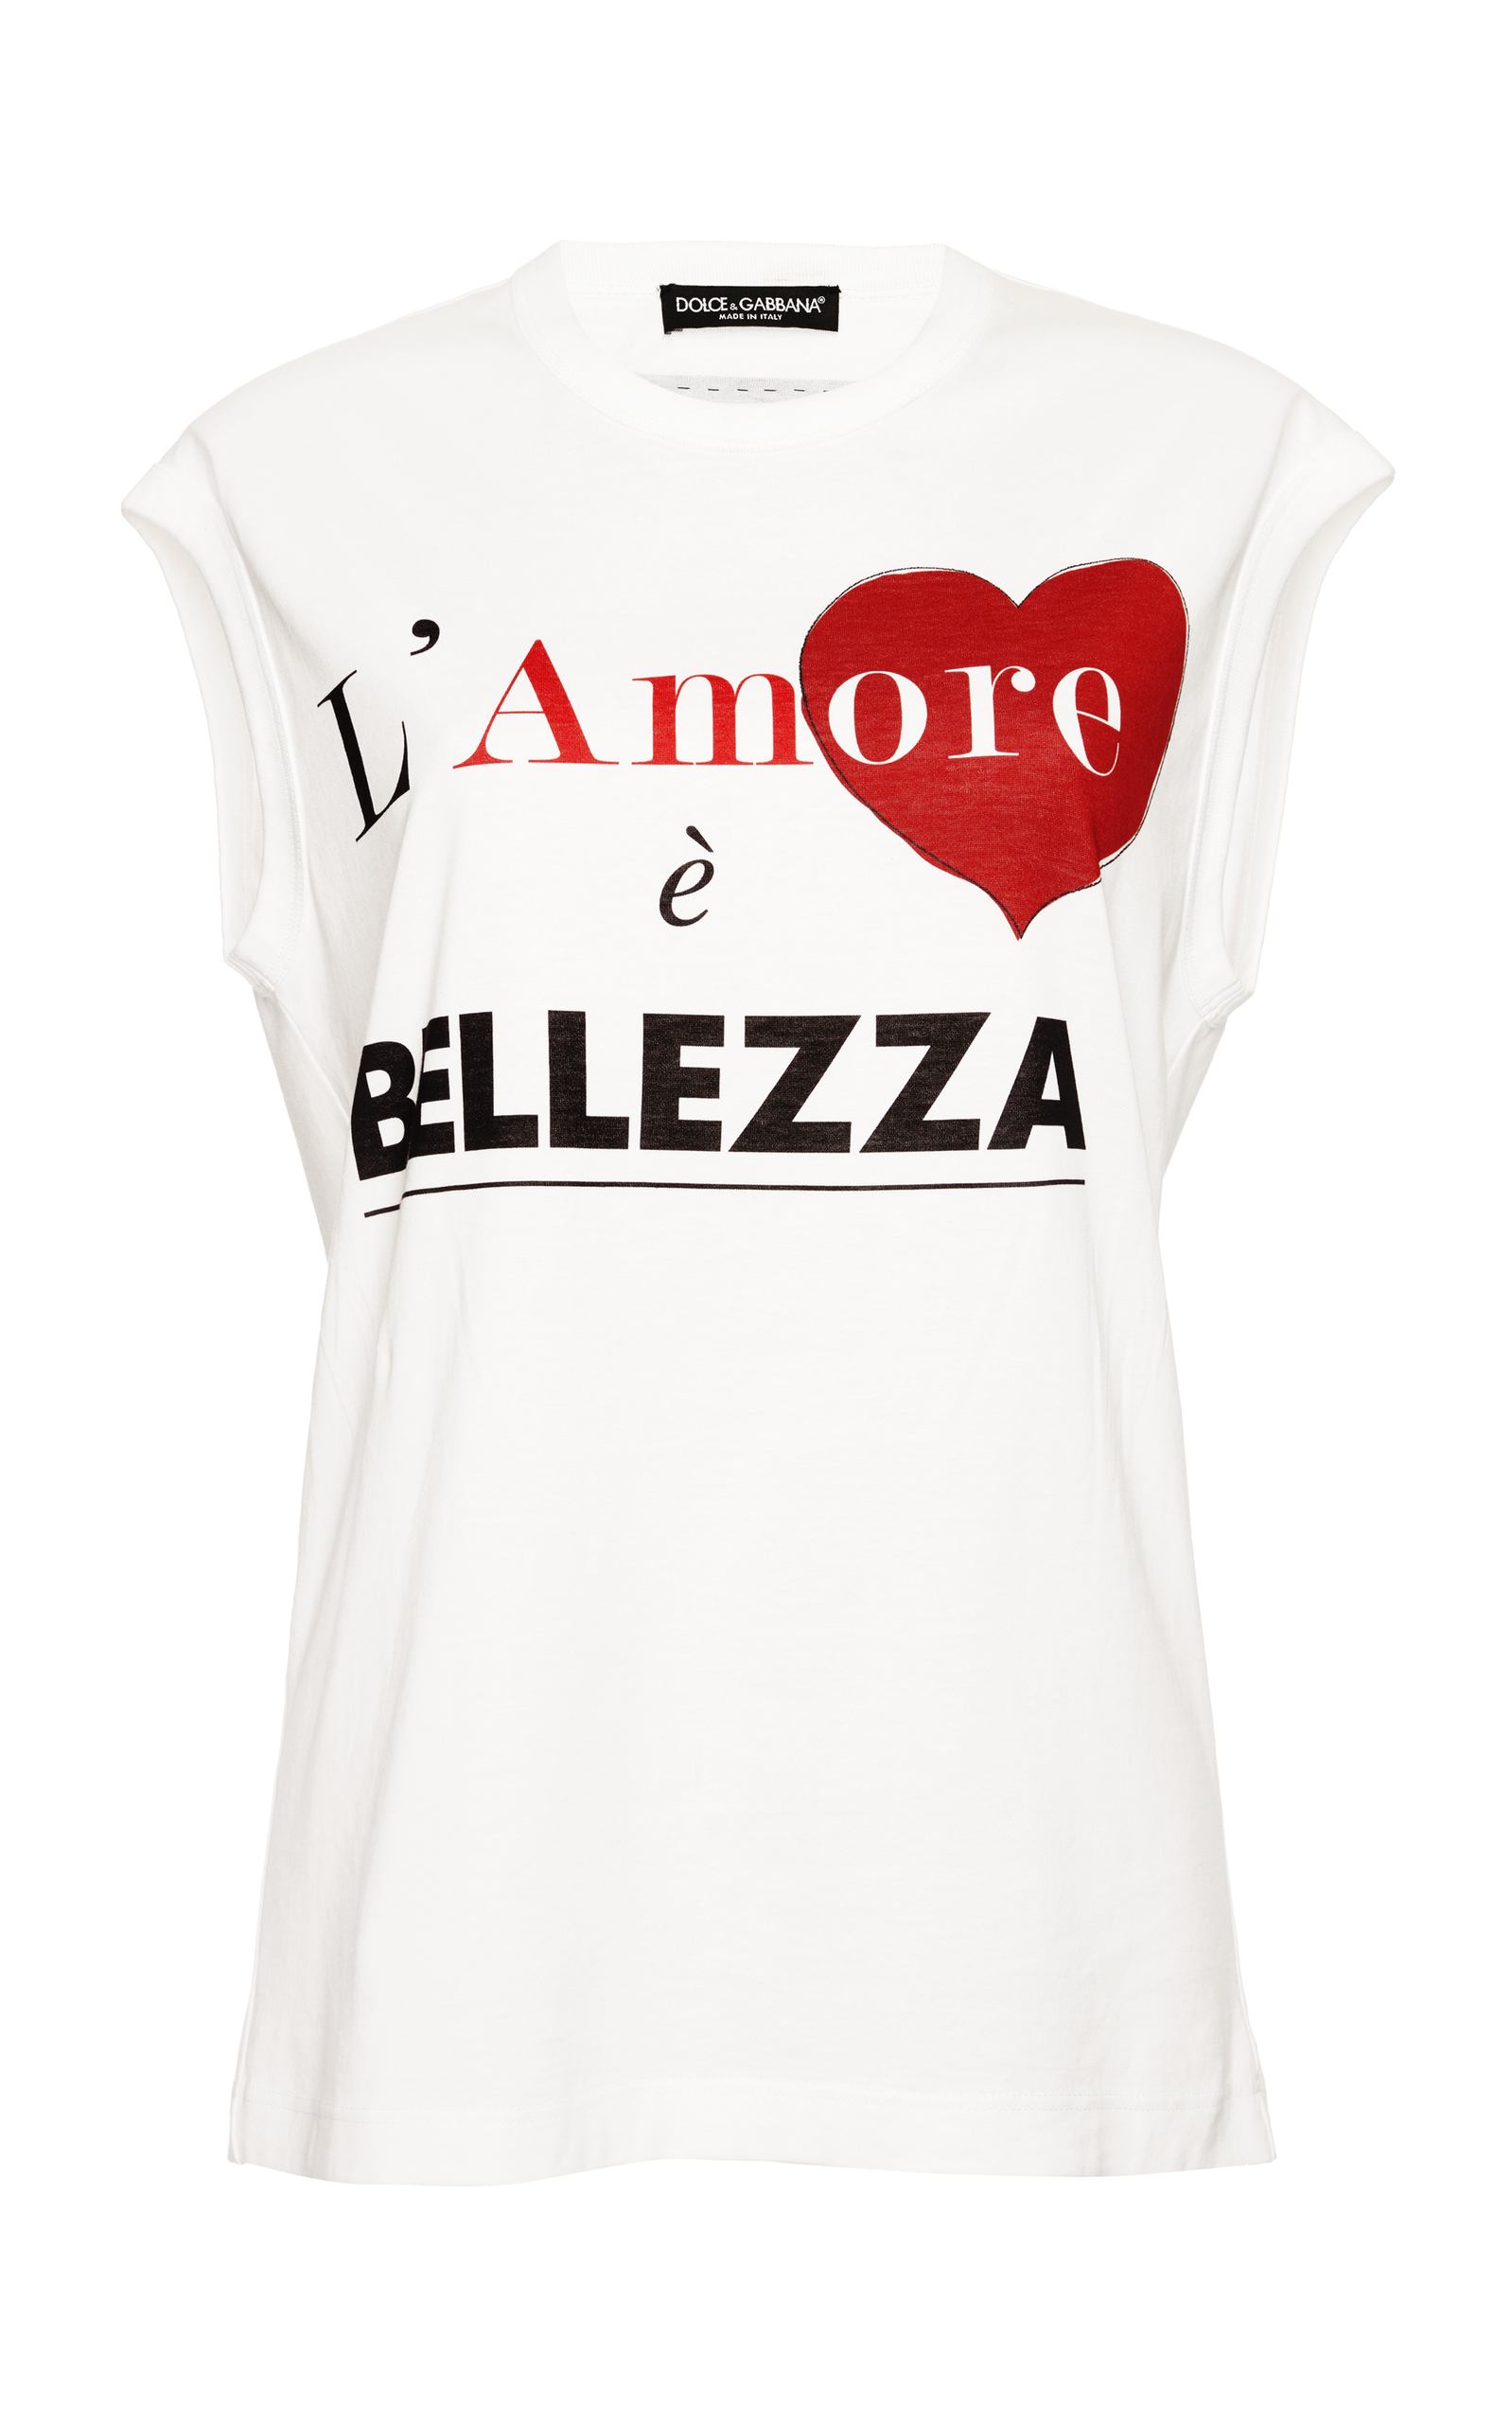 L'Amore E Bellezza Cap-Sleeve Graphic-Print T-Shirt, White